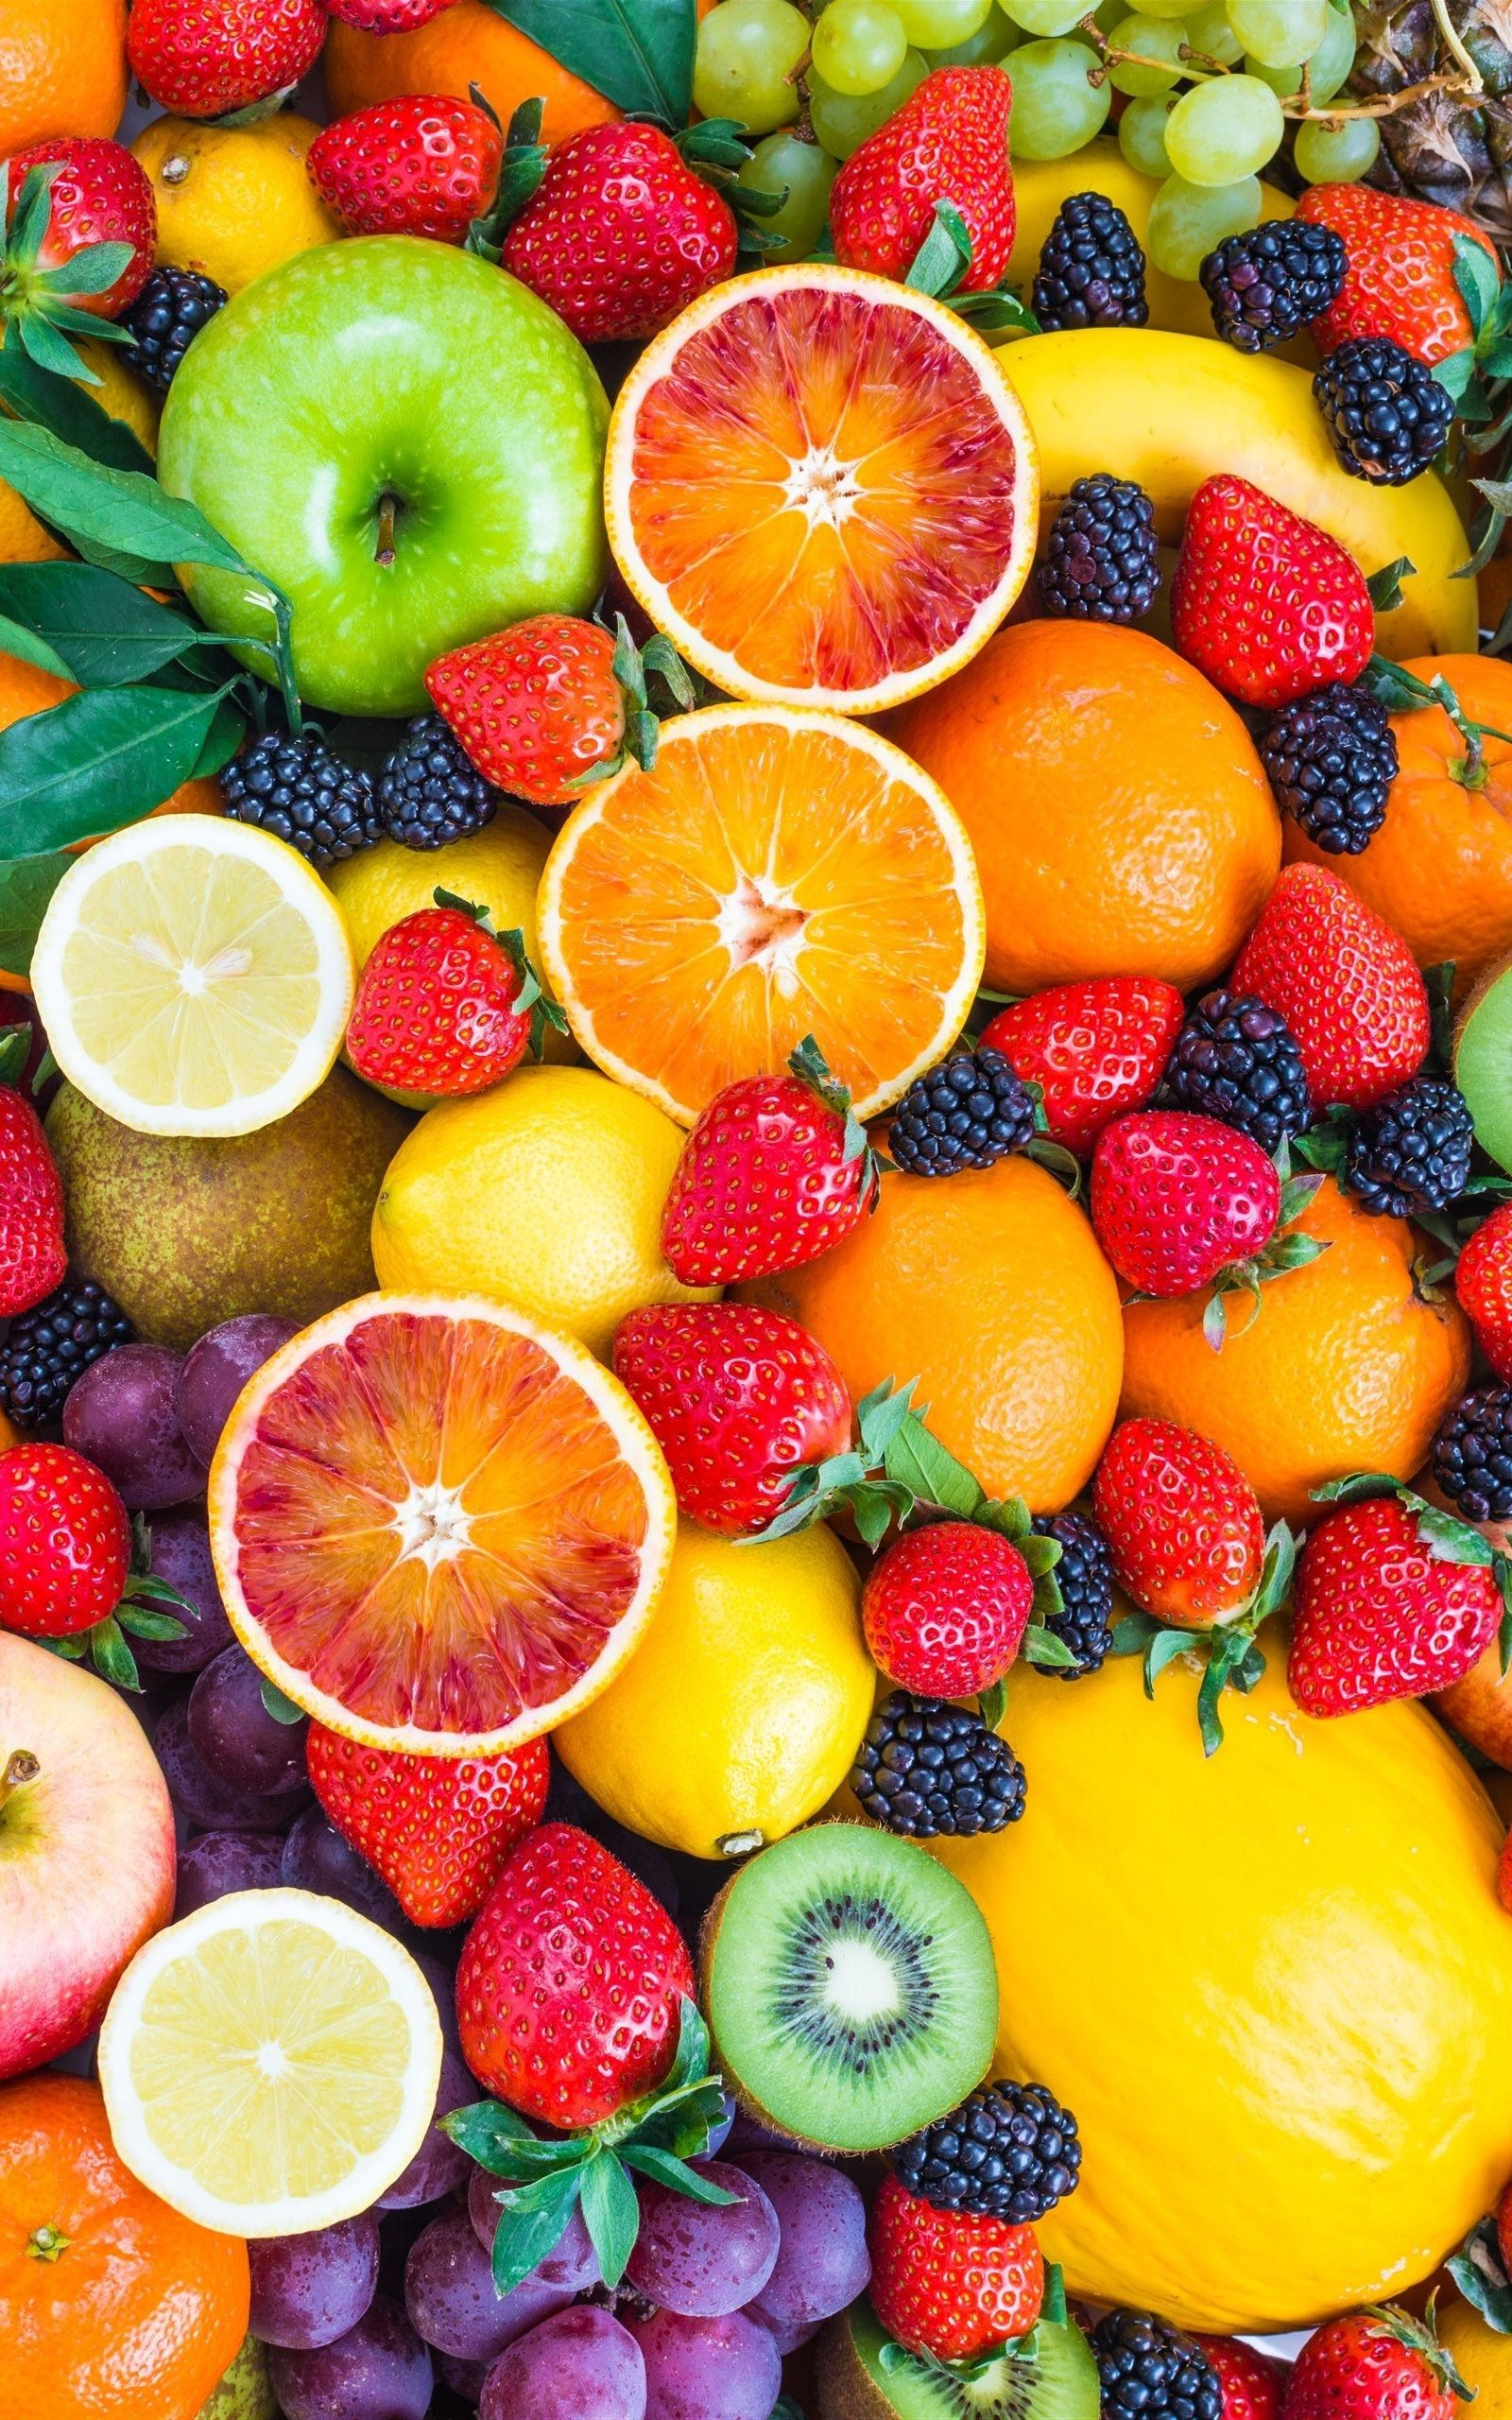 Best Fresh Fruit Wallpaper iPhone With images Fruit wallpaper 1600x2560